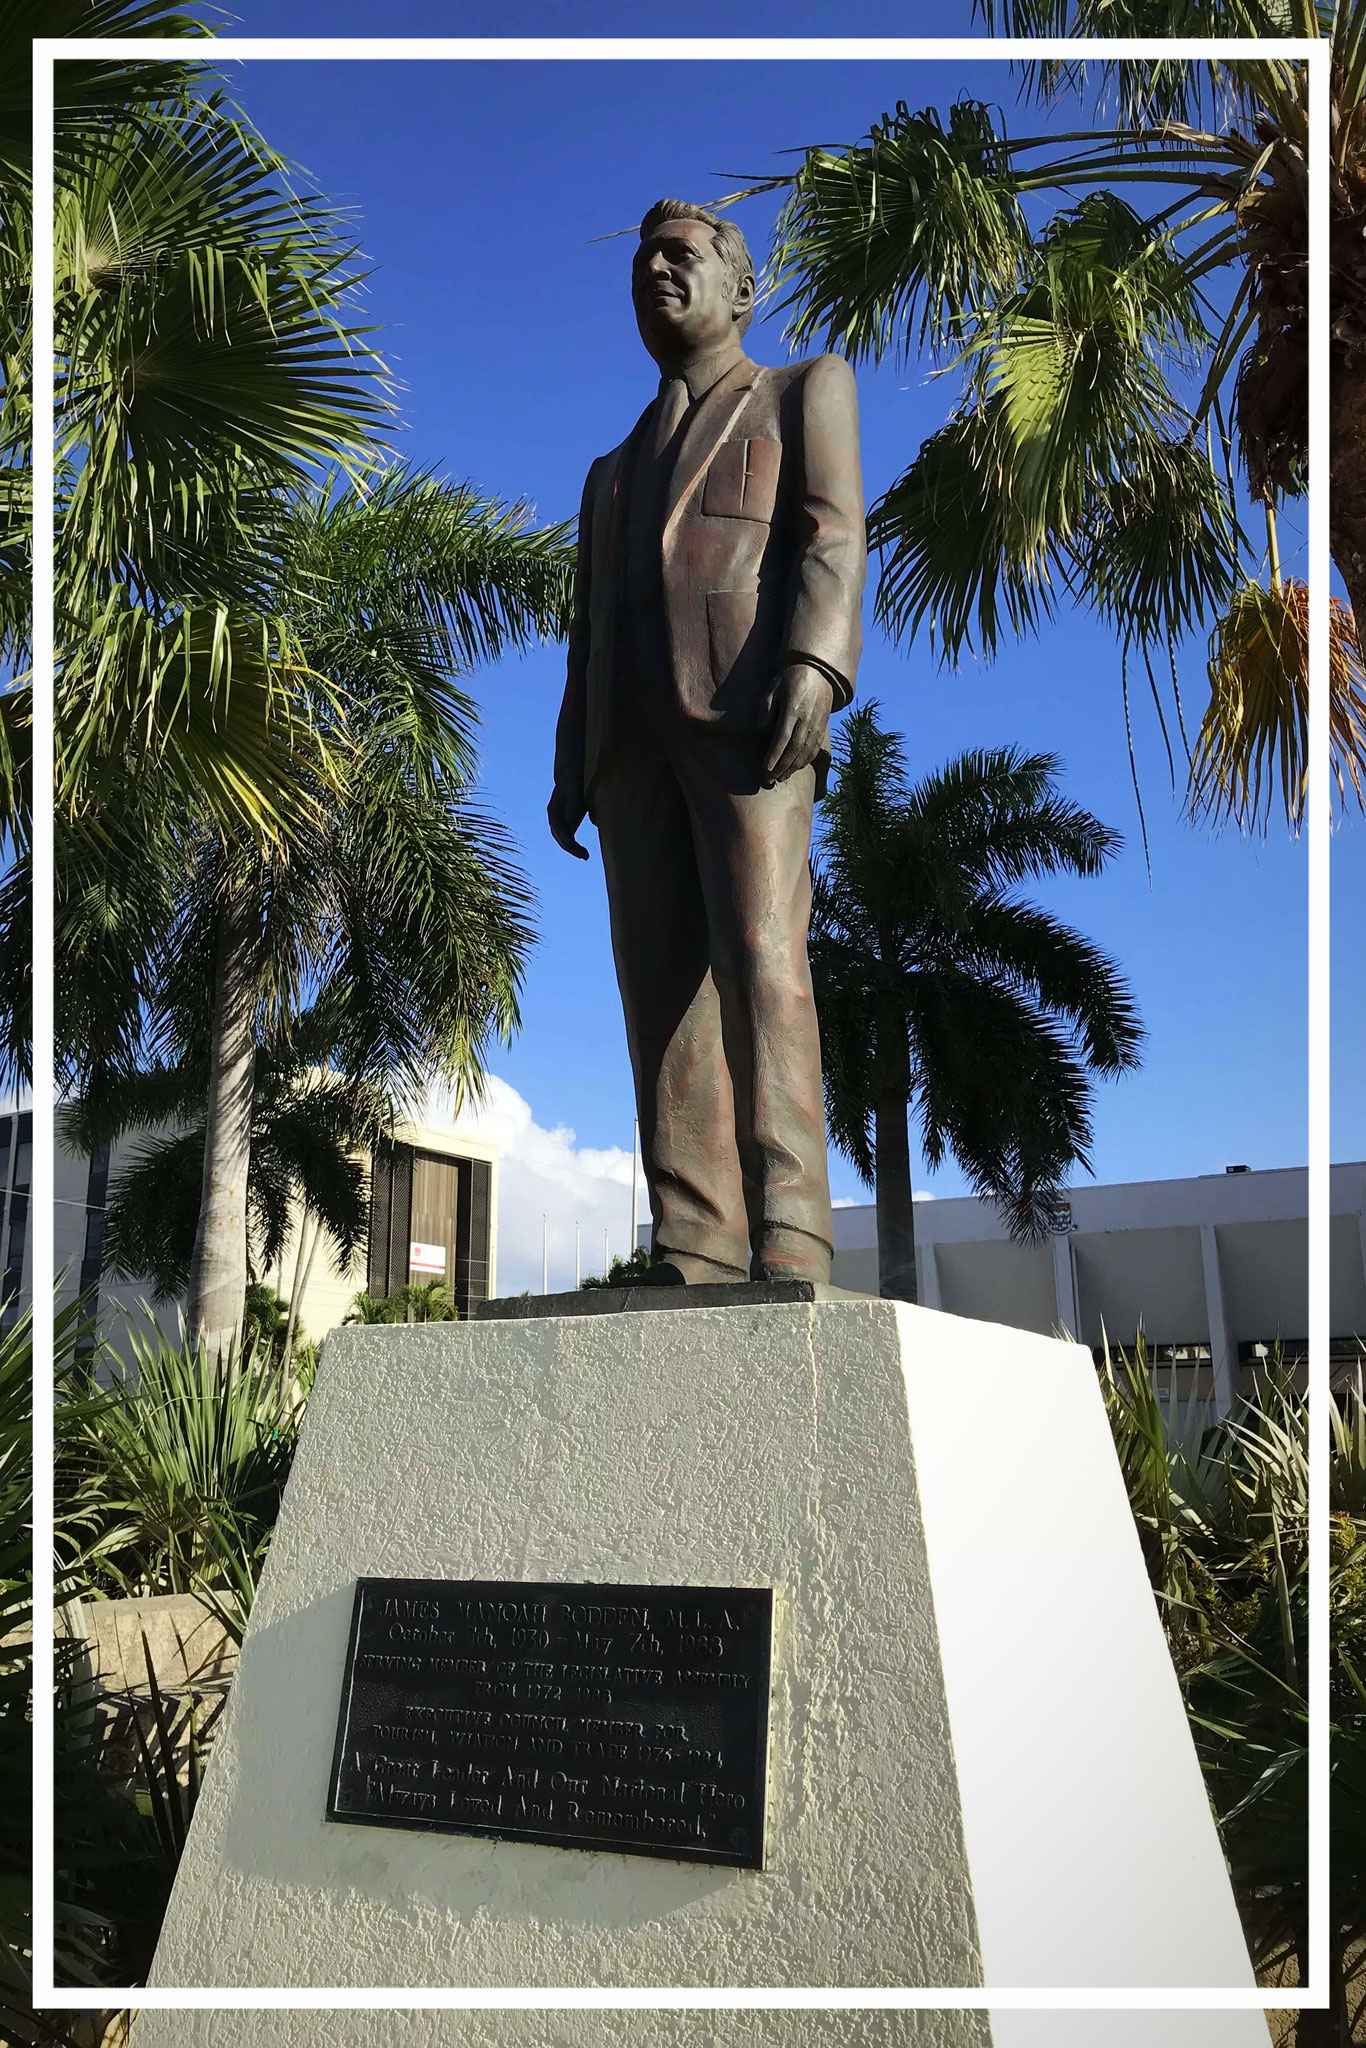 James Manoah Bodden Statue, Heroes Square, George Town